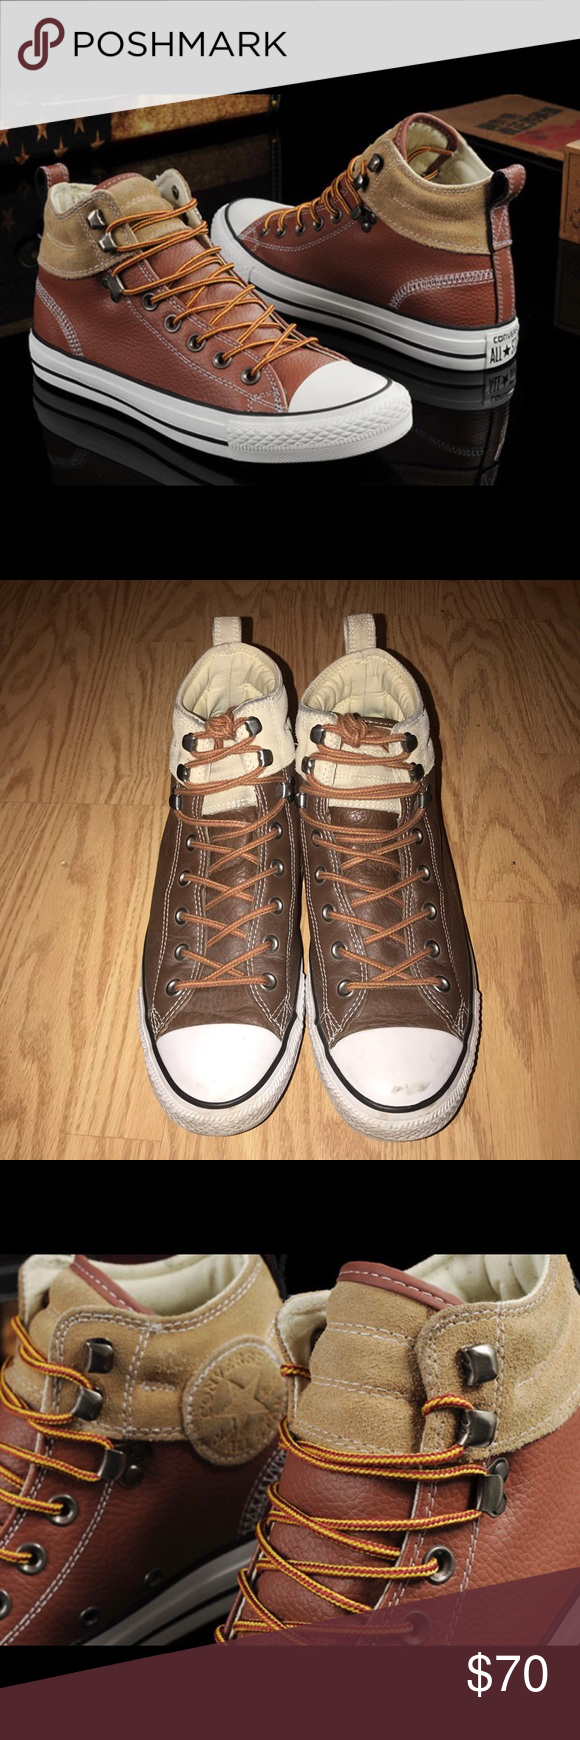 5973c563d2c0 CONVERSE Men s Chuck Taylor All Star Leather Suede Color  Brown Size  10.5  Material